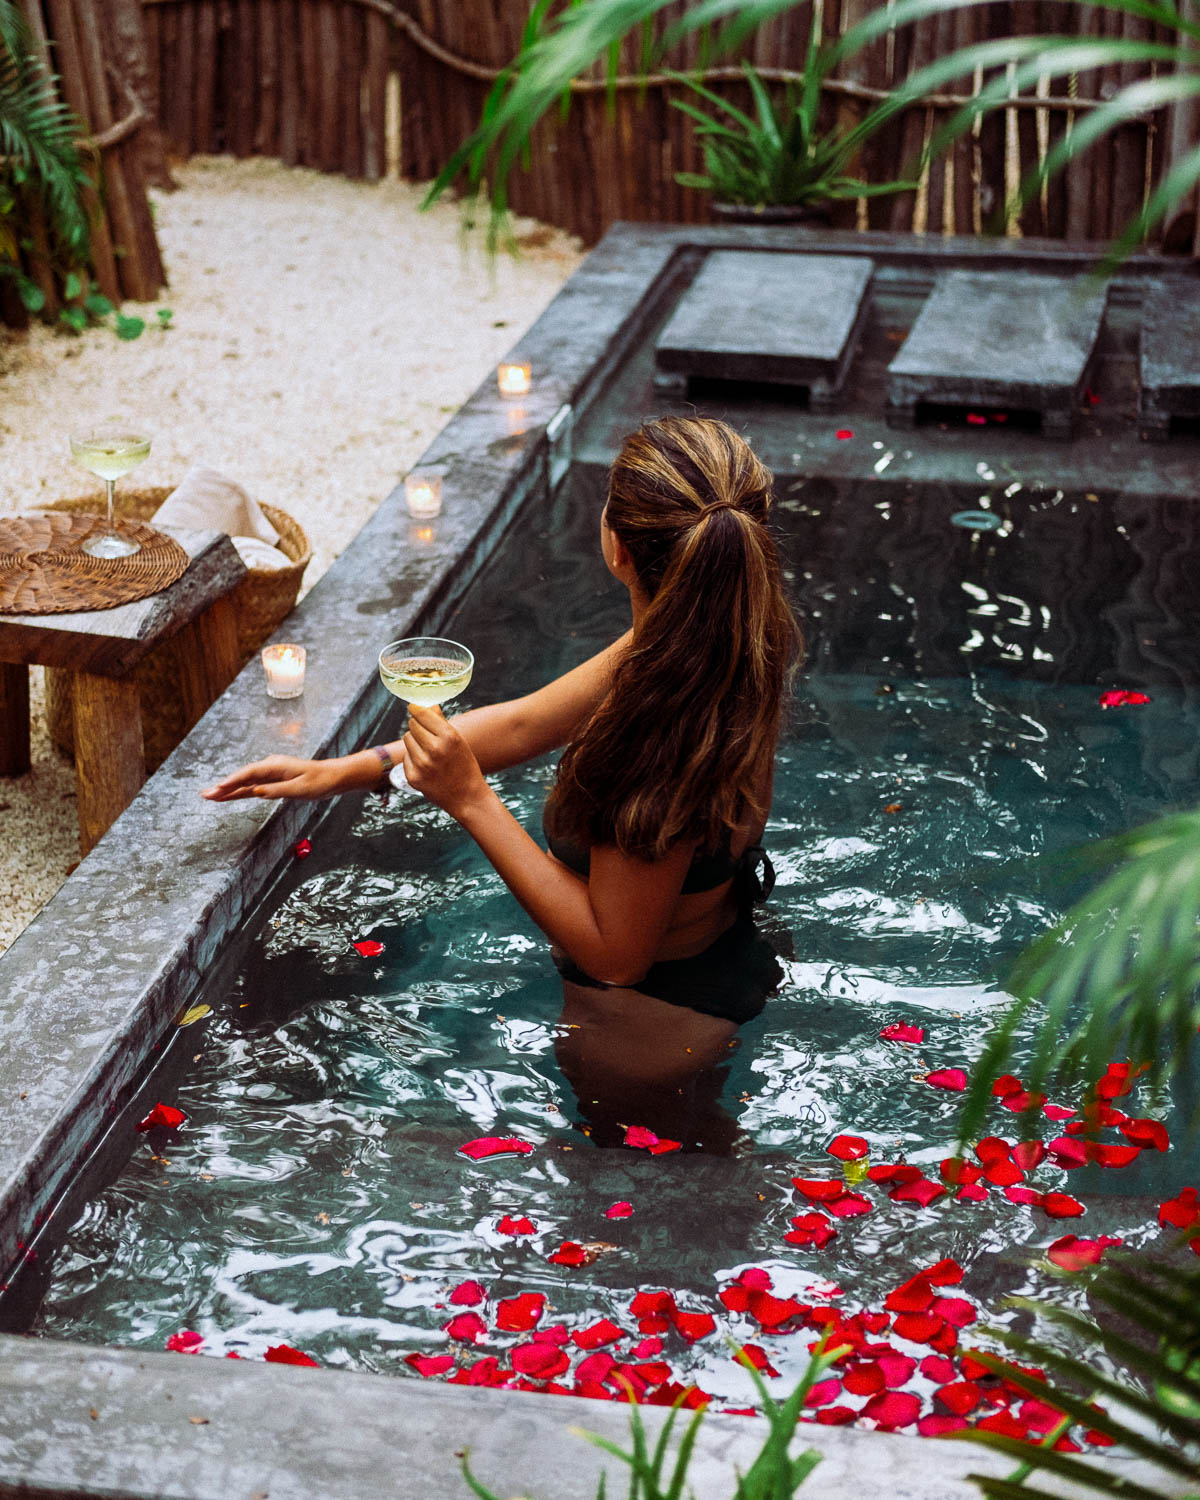 Rachel Off Duty: A Woman in a Pool with Rose Petals, Candles, and Champagne